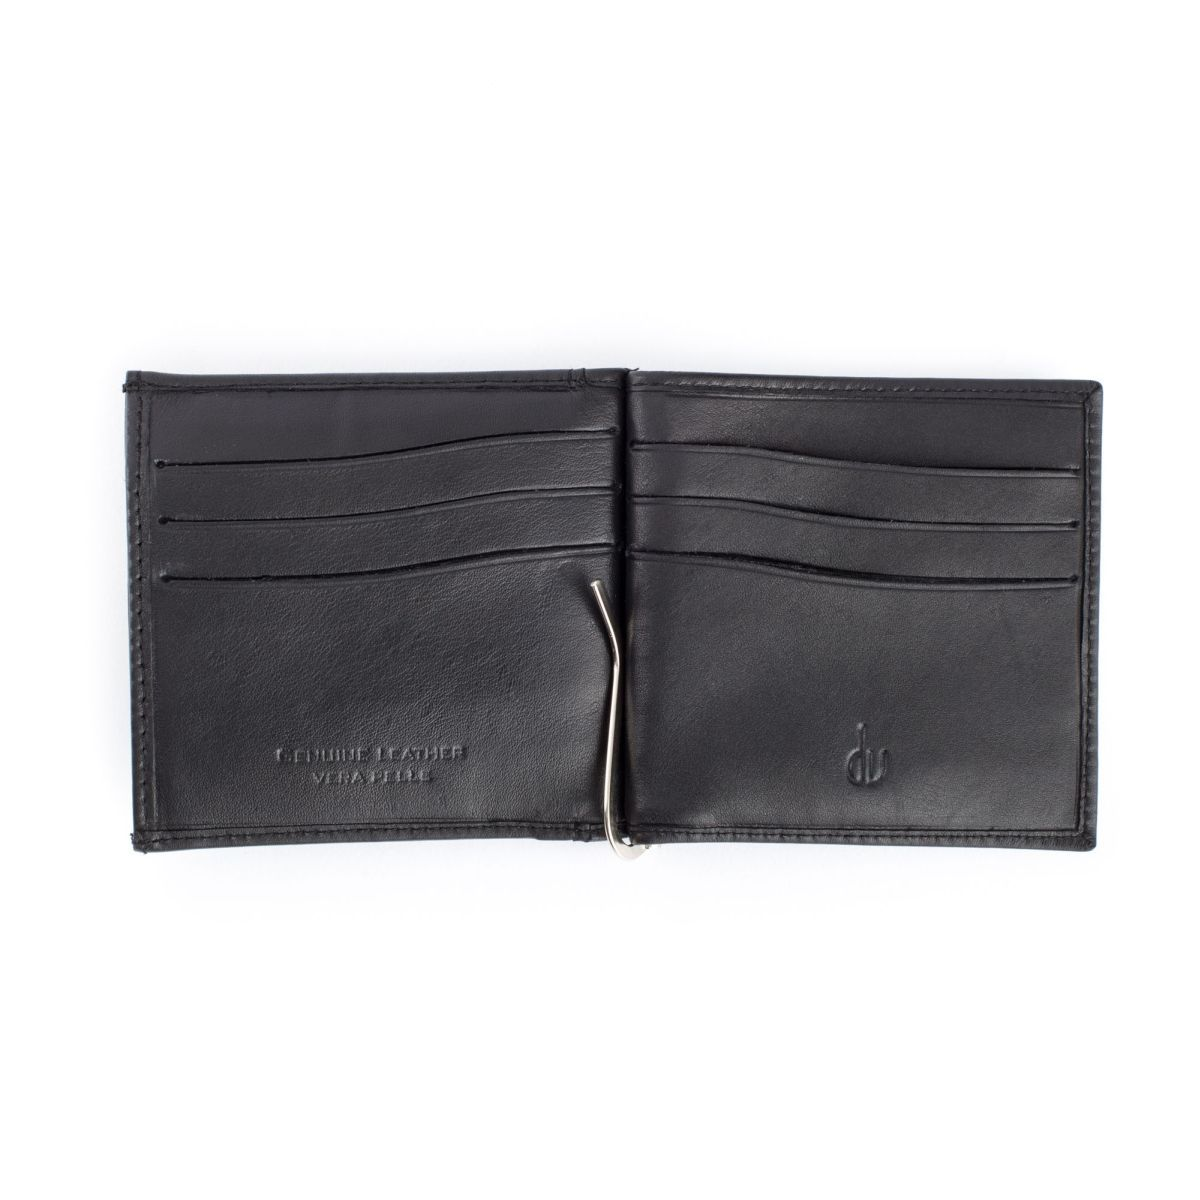 Small Leather Wallet With Clips And Coin Pocket - Black